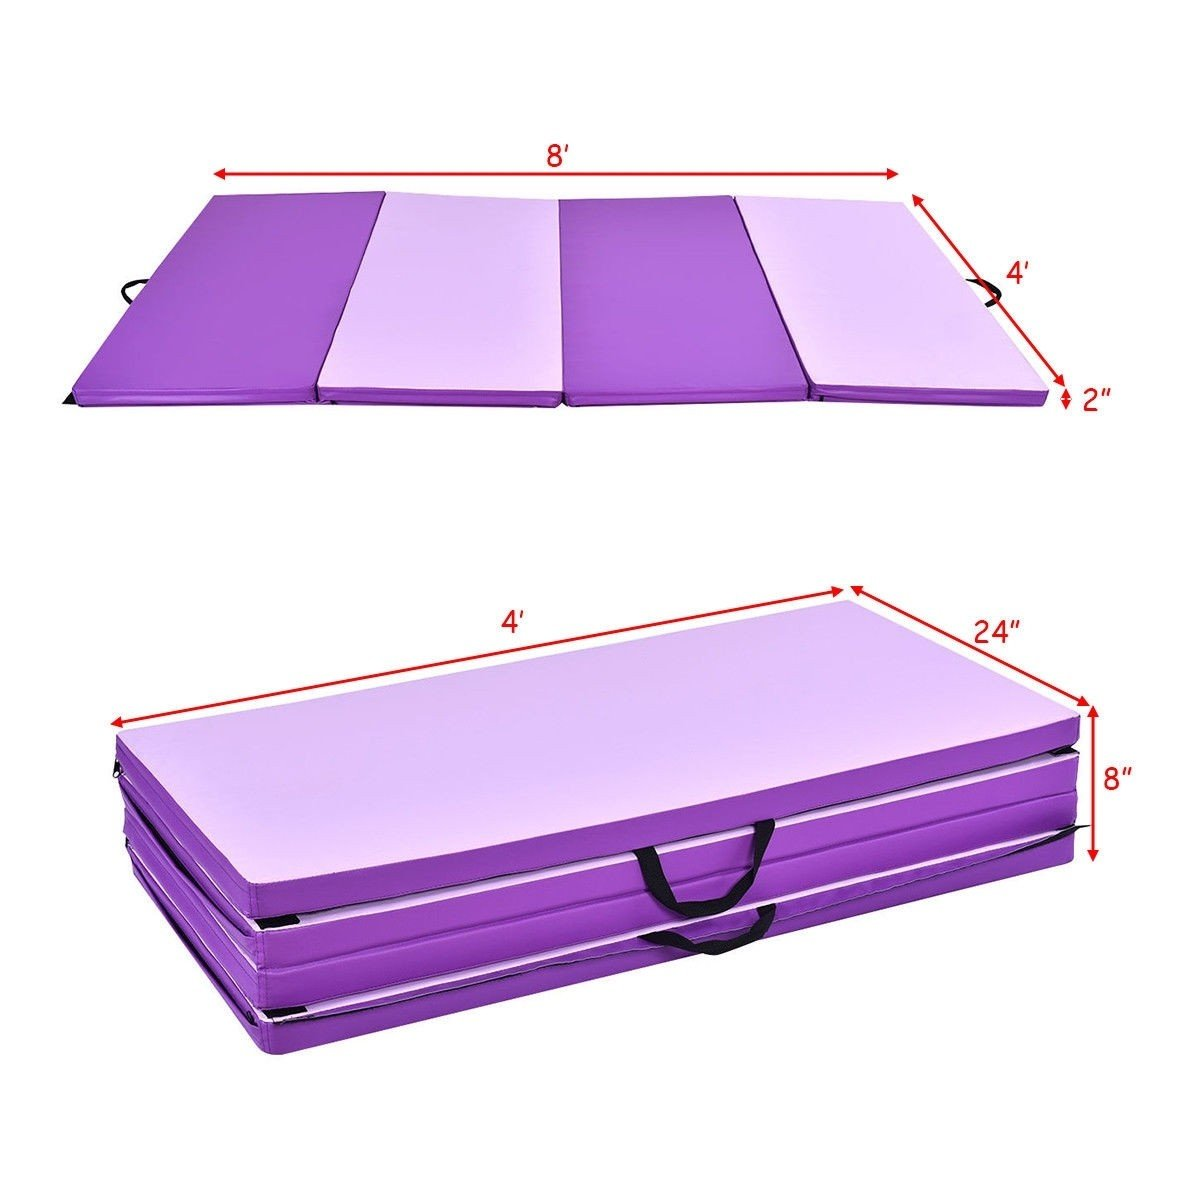 MD Group Two Size Thick Folding Panel Gymnastics Mat, 8